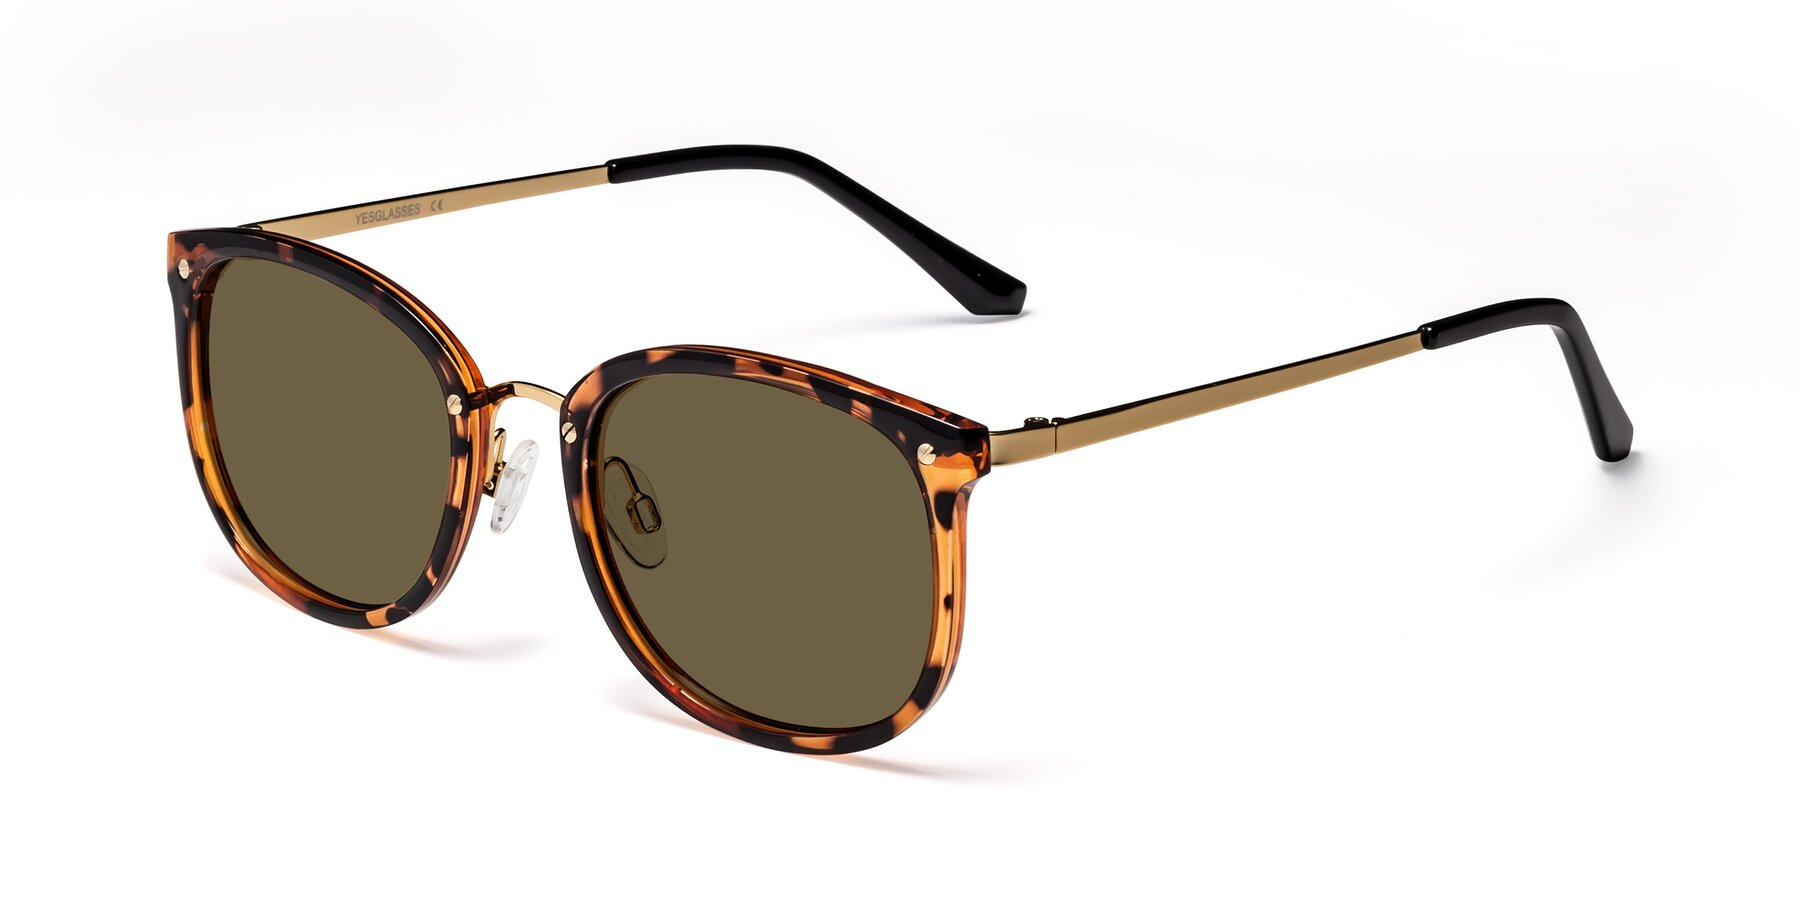 Angle of Timeless in Tortoise-Golden with Brown Polarized Lenses